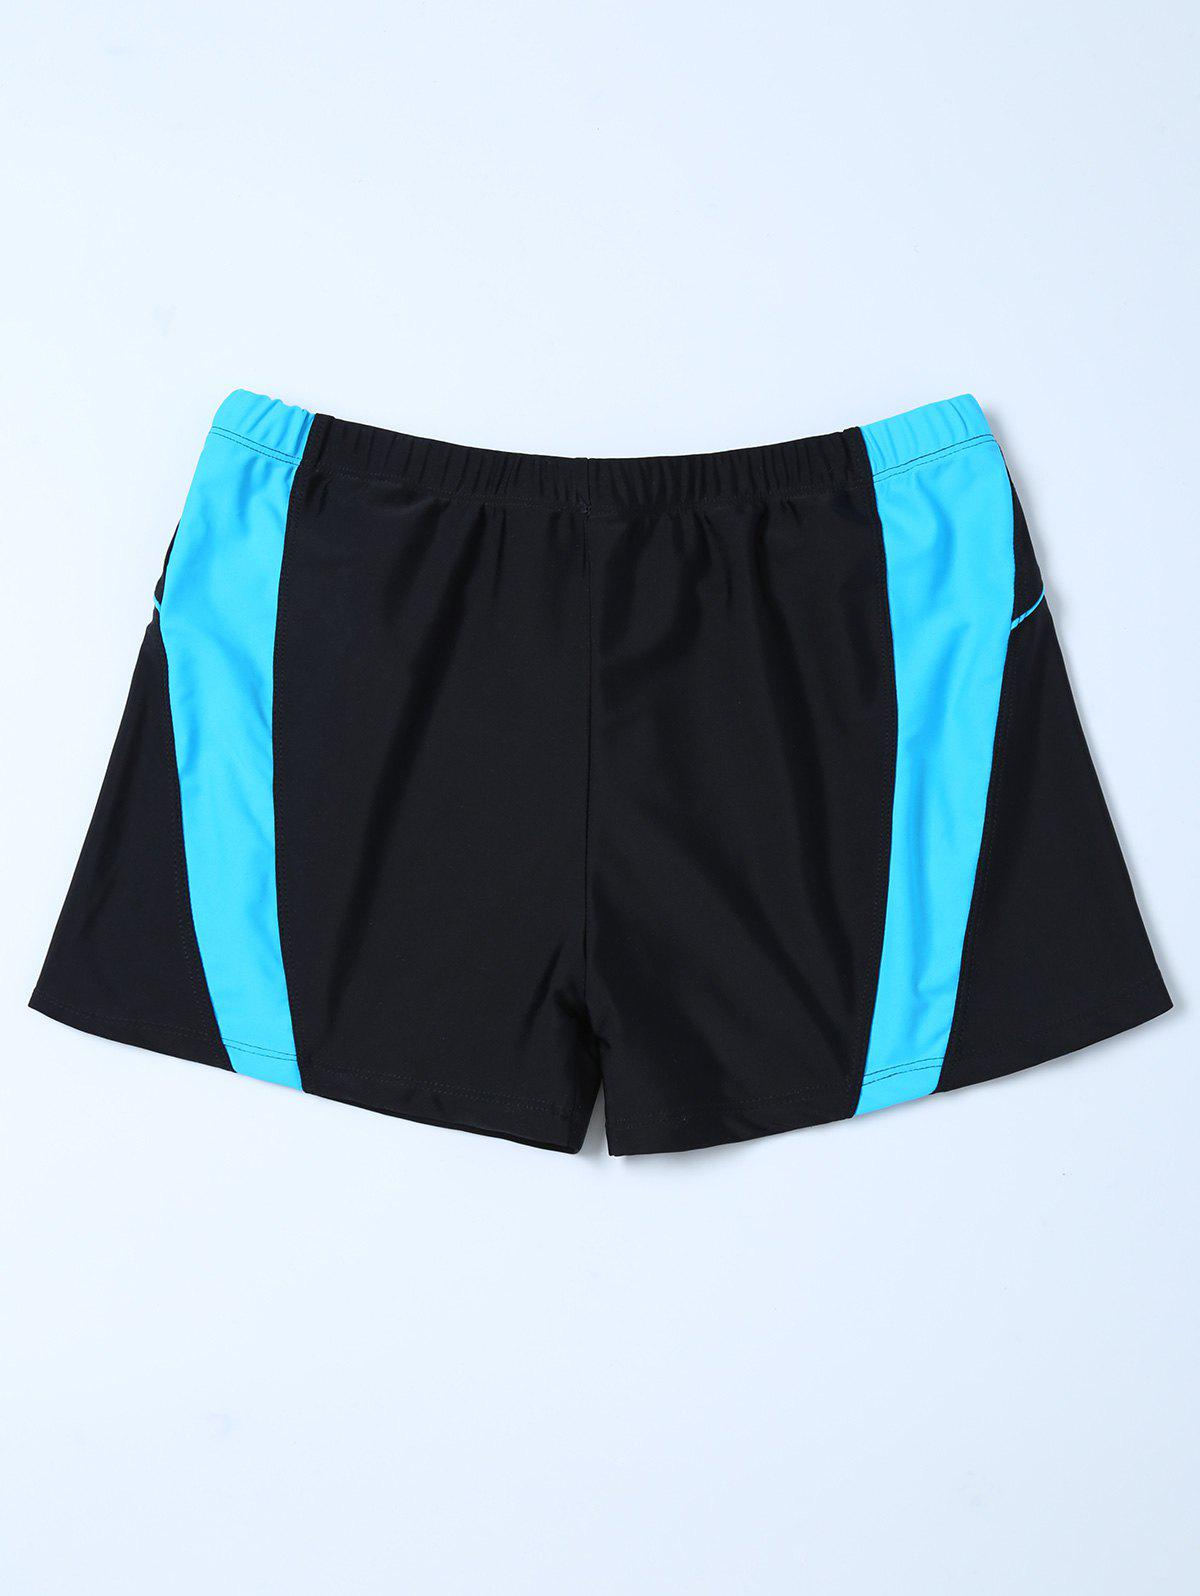 Trendy Contrast Insert Swim Bottoms Boyshorts